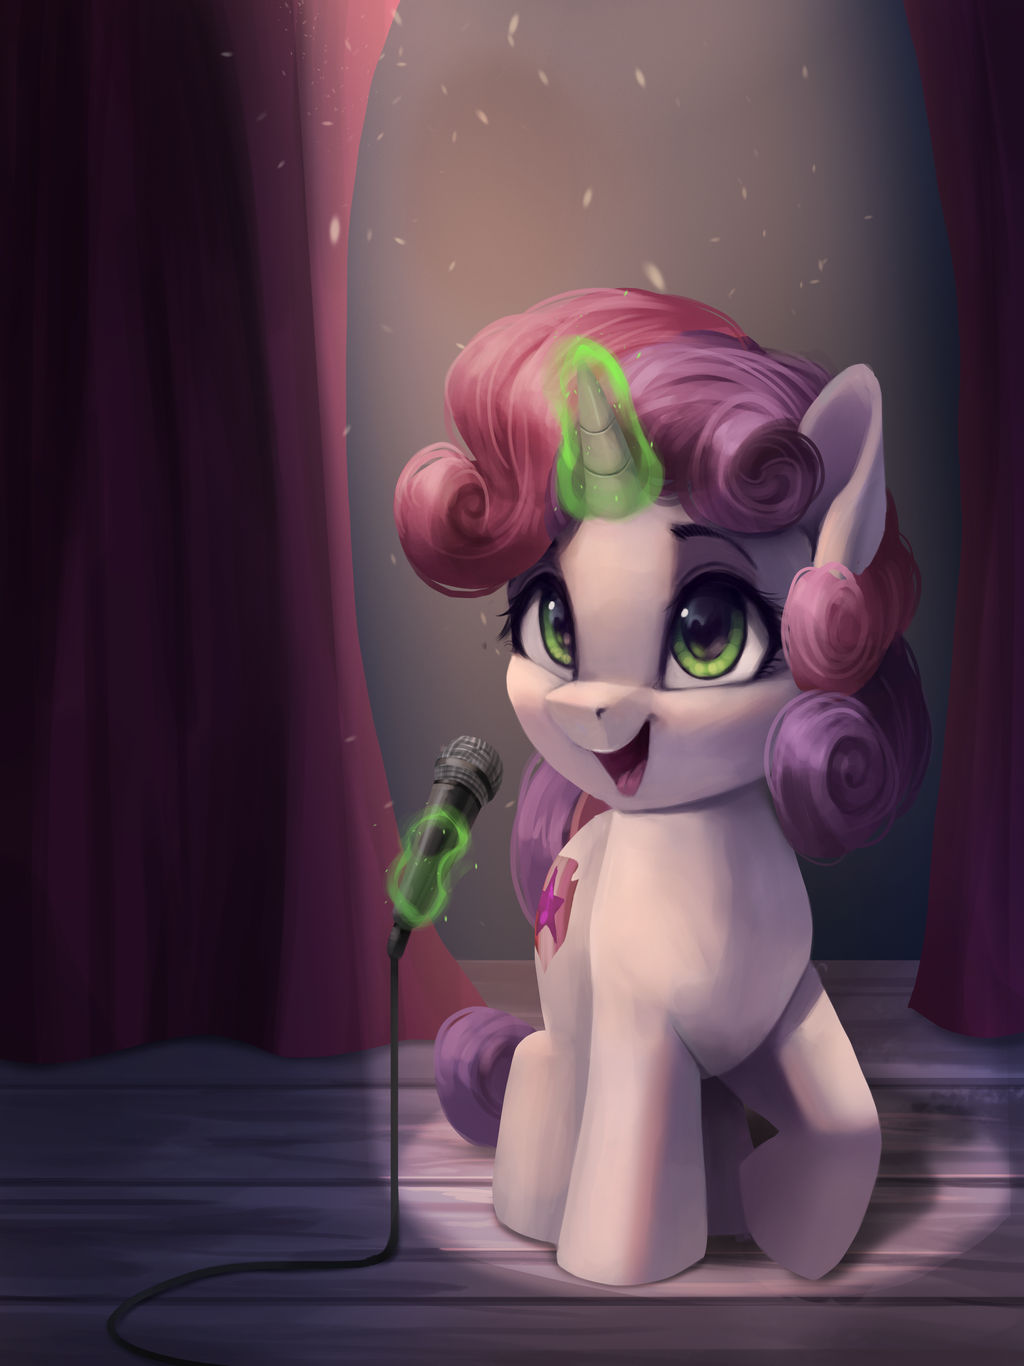 sweetie_singing__atg_ix_d1__by_vanillagh